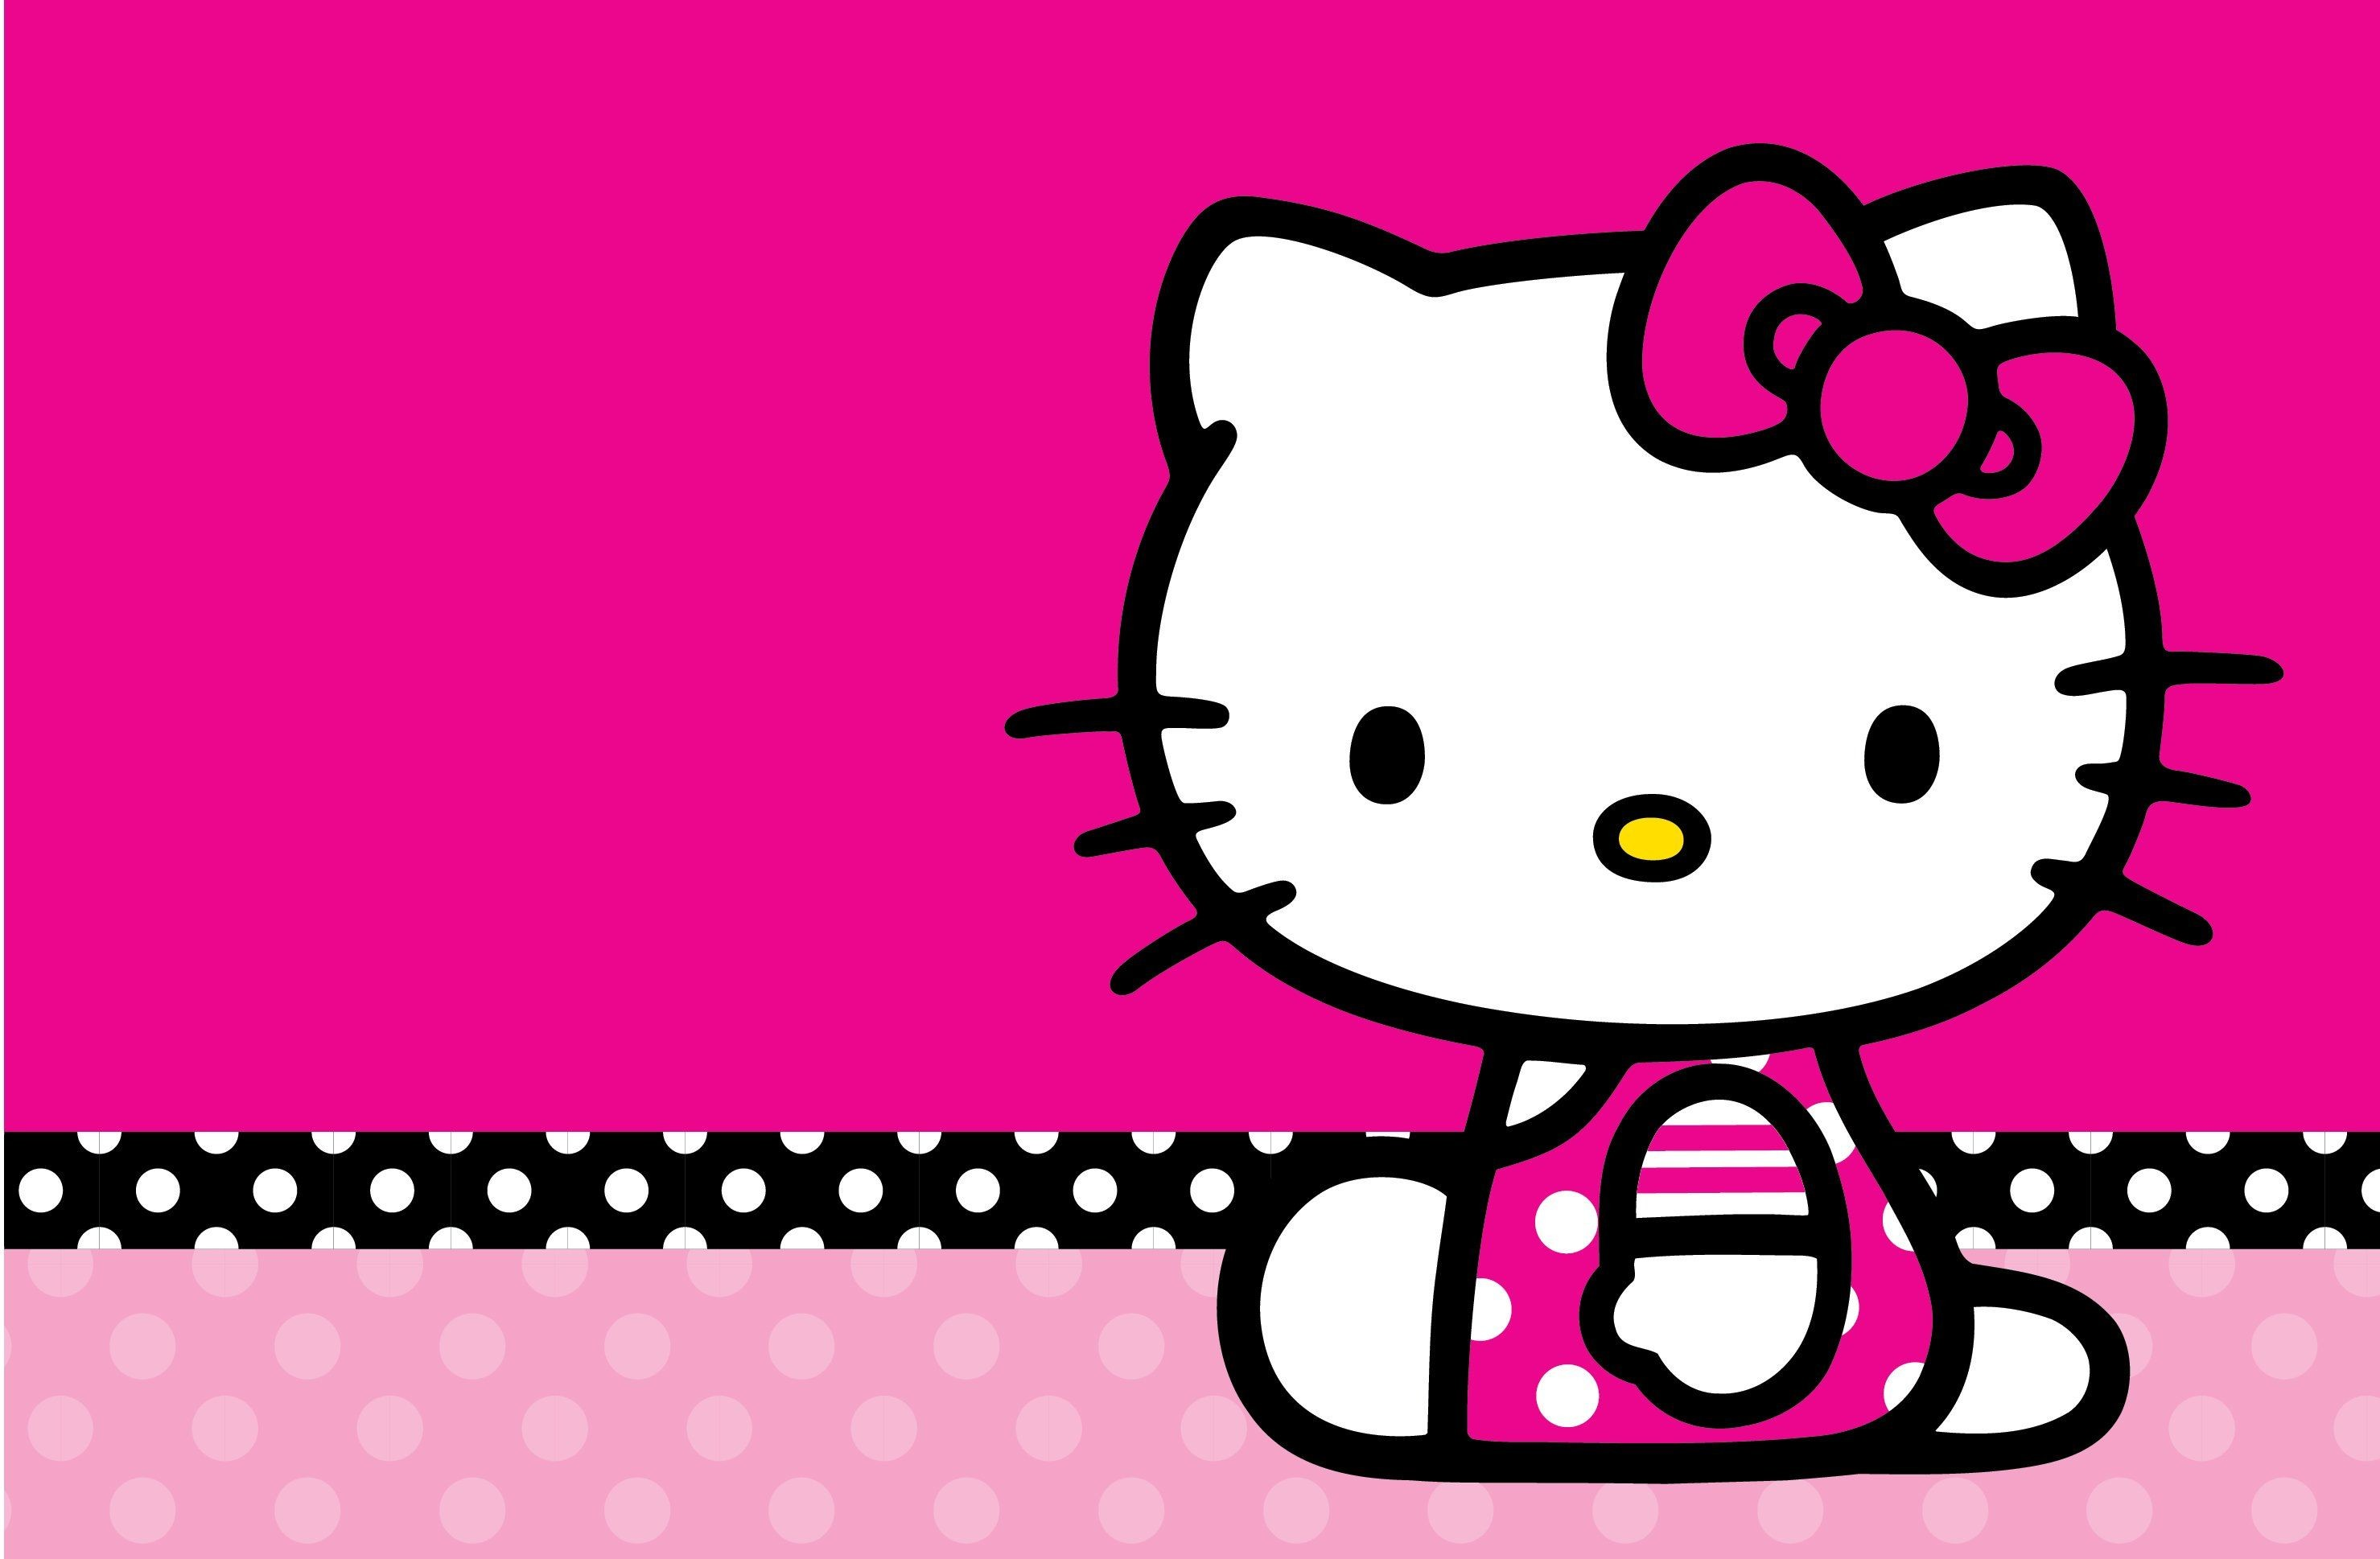 Cool Hello Kitty Wallpapers 52 Images